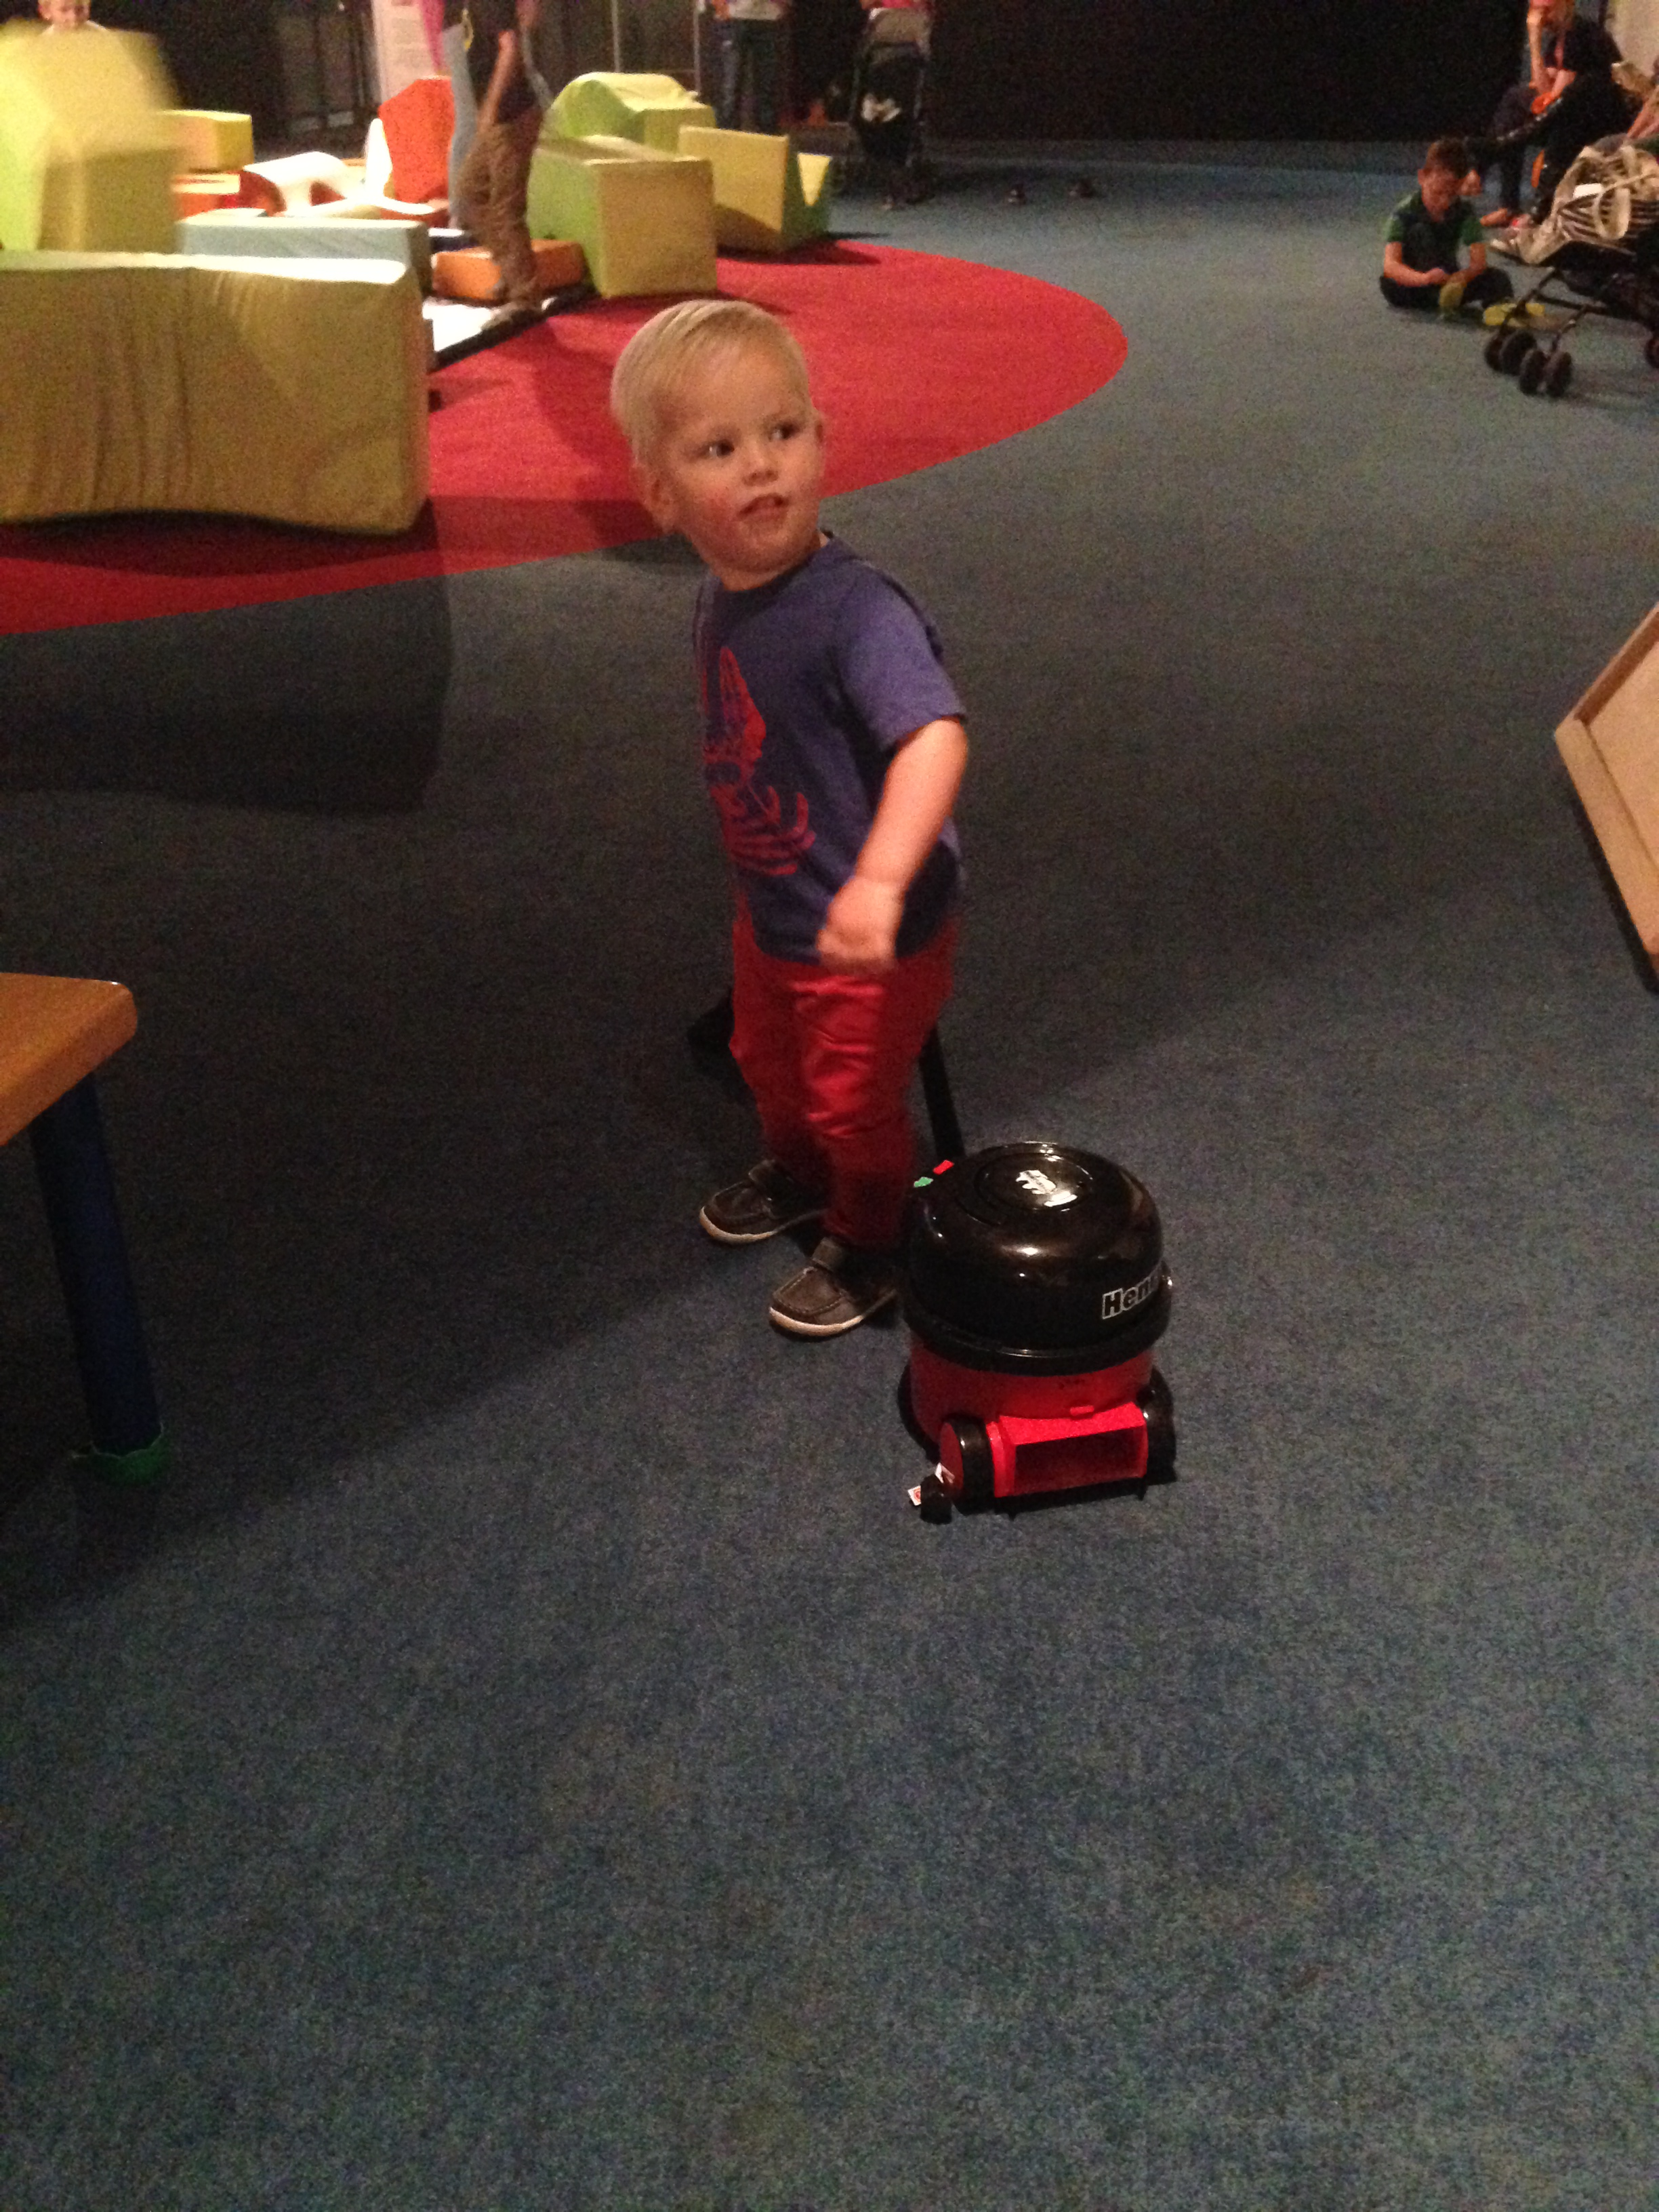 James with the toy Henry vacuum at Life science centre newcastle upon tyne